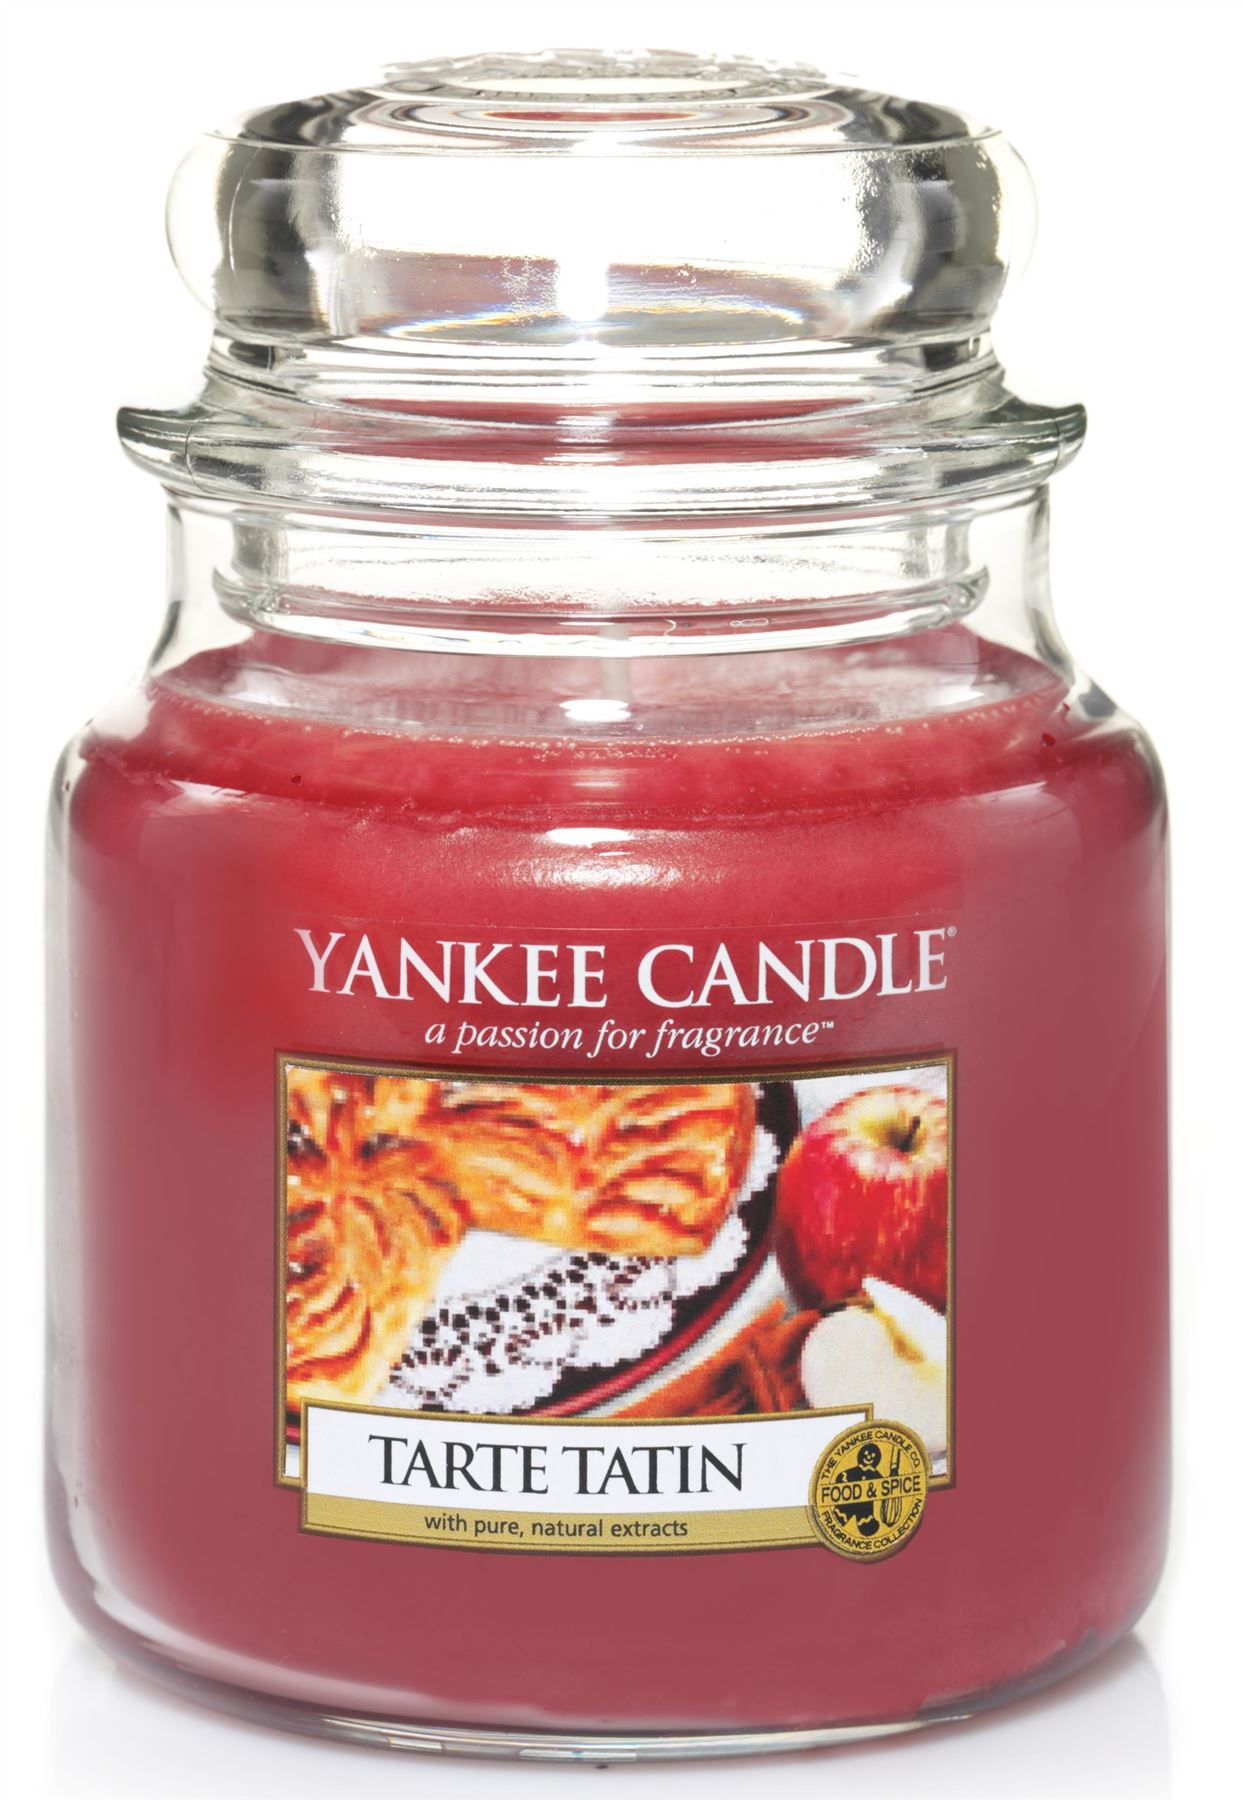 Yankee Candle Company. Add extra charm, as well as welcoming fragrances, to any room of your home with Yankee Candles from Kohl's! Our selection of Yankee Candle Company items invite your friends and family to kick back and relax.